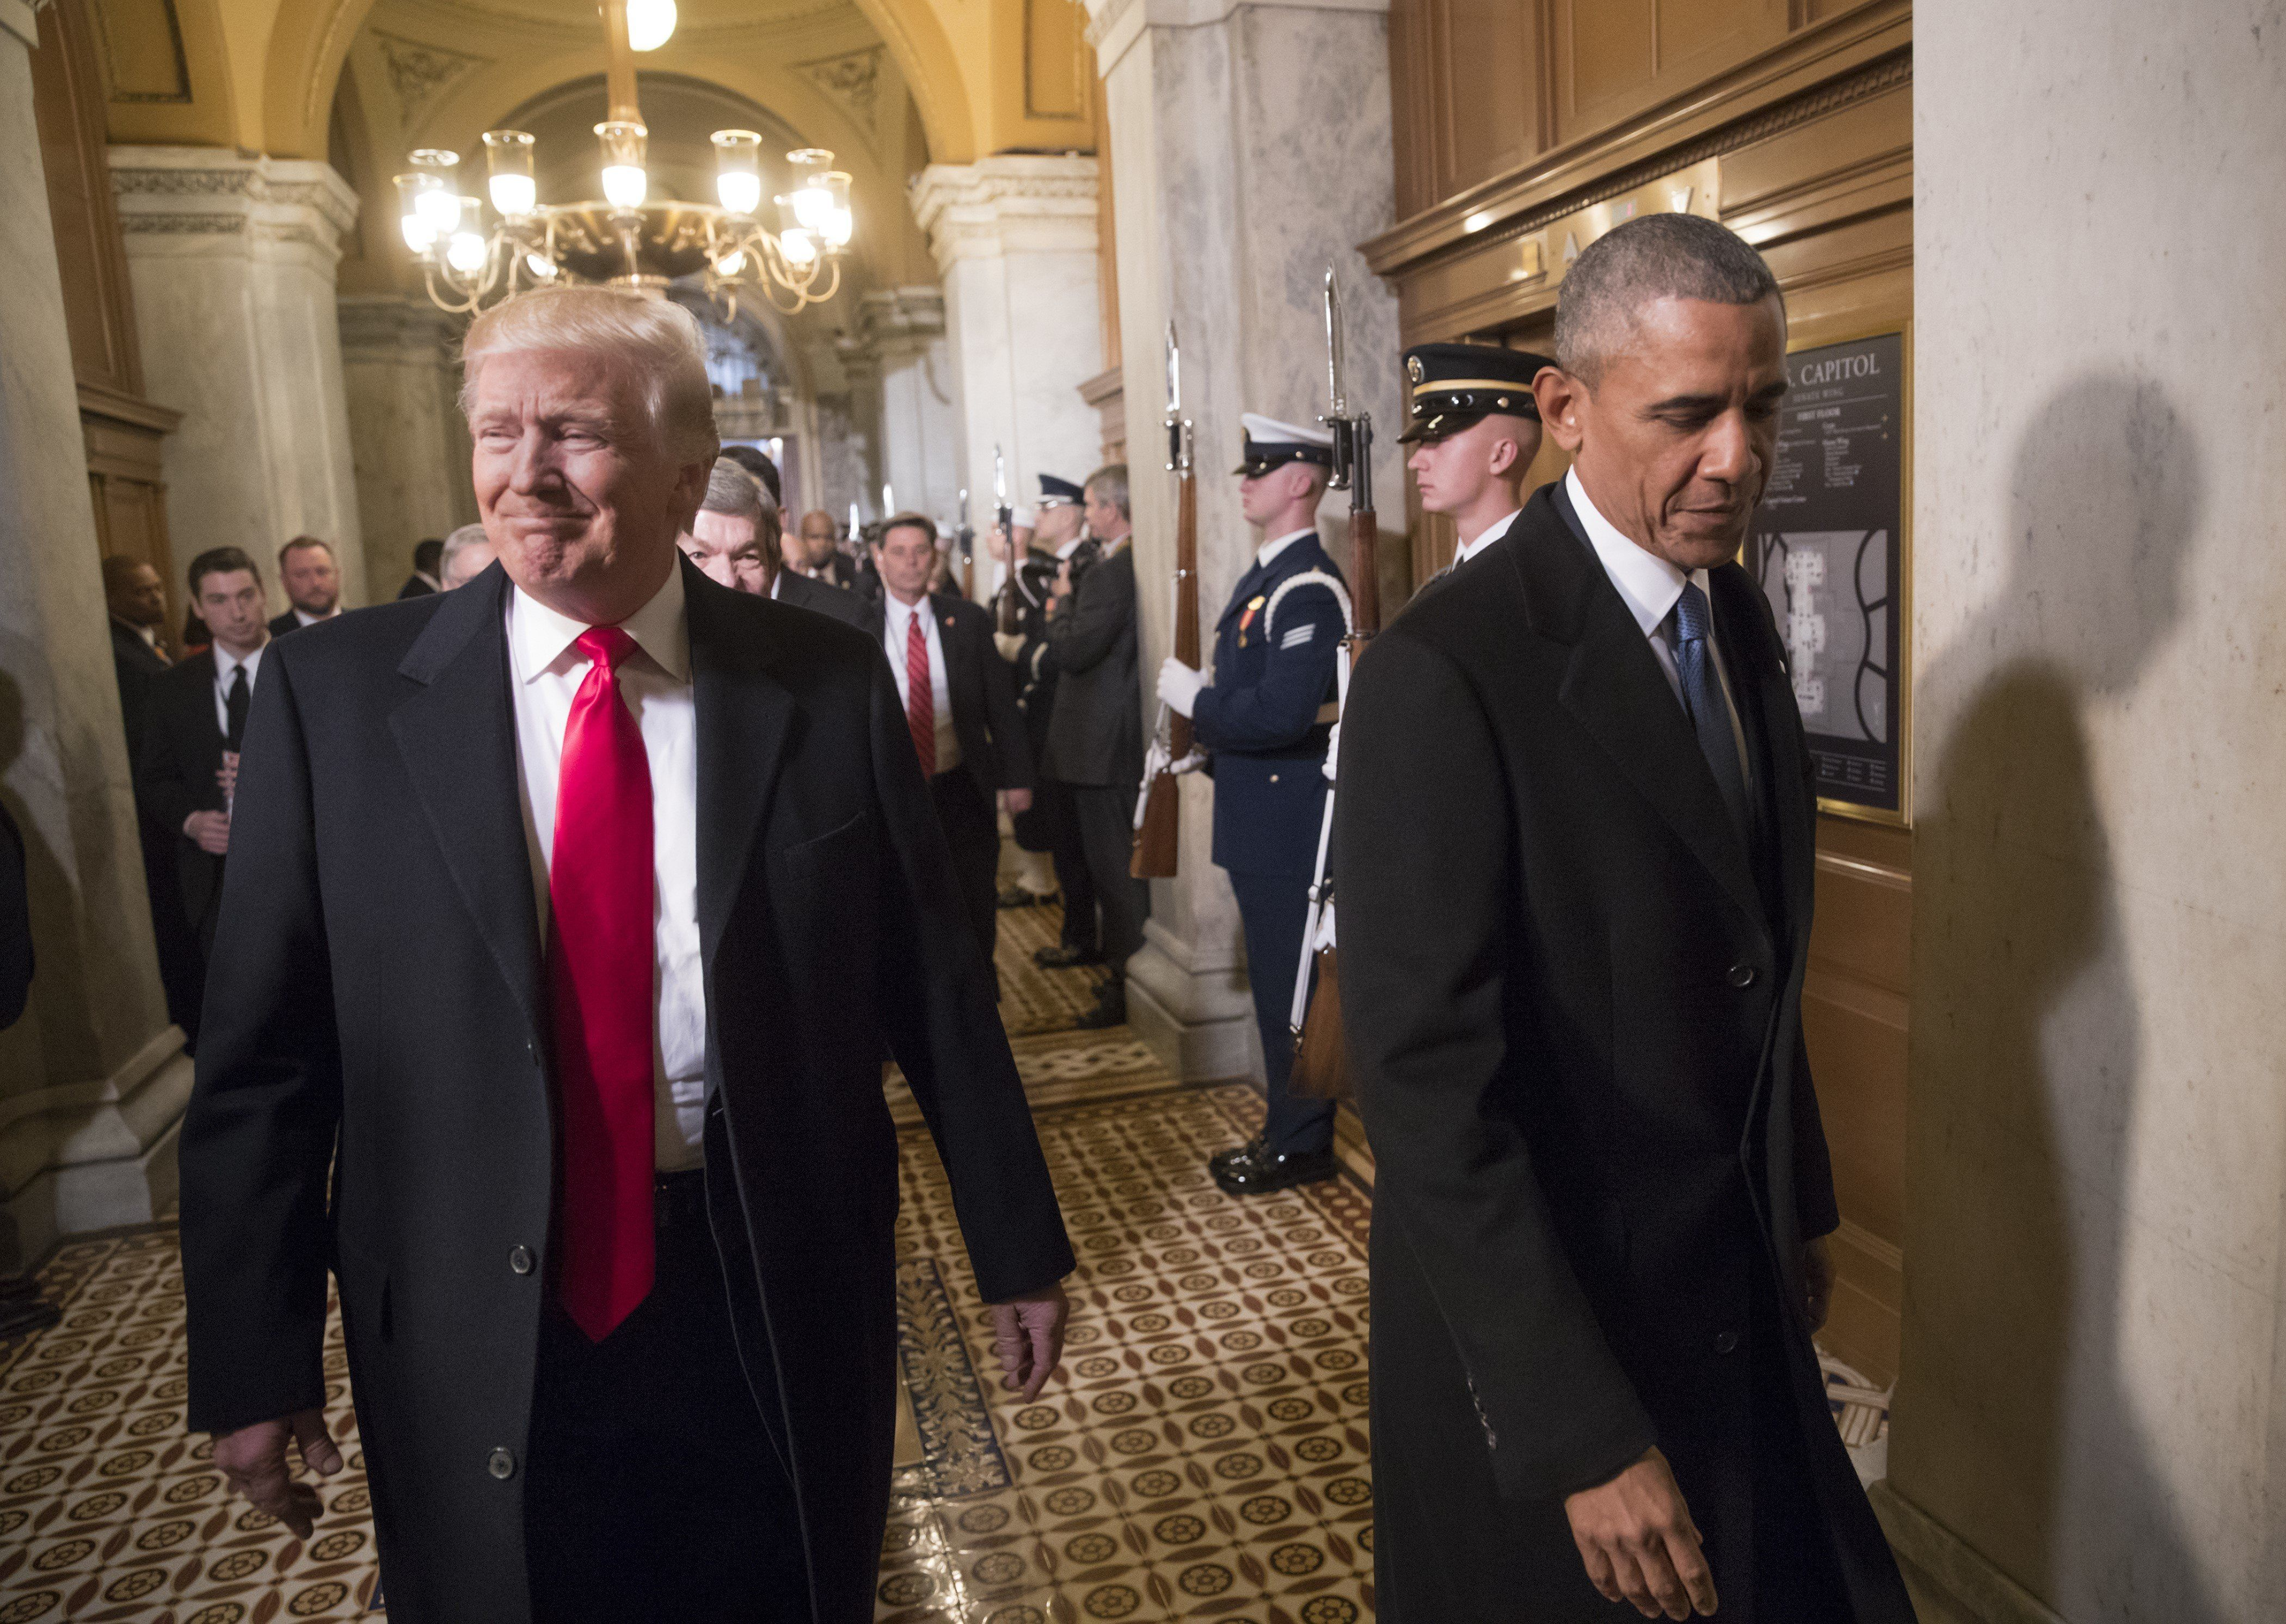 WASHINGTON, USA - JANUARY 20: (EDITORIAL USE ONLY) President-elect Donald Trump, left, and President Barack Obama arrive for Trump's inauguration ceremony at the Capitol in Washington, USA on January 20, 2017.    (Photo by J. Scott Applewhite / Pool / AP/Anadolu Agency/Getty Images)